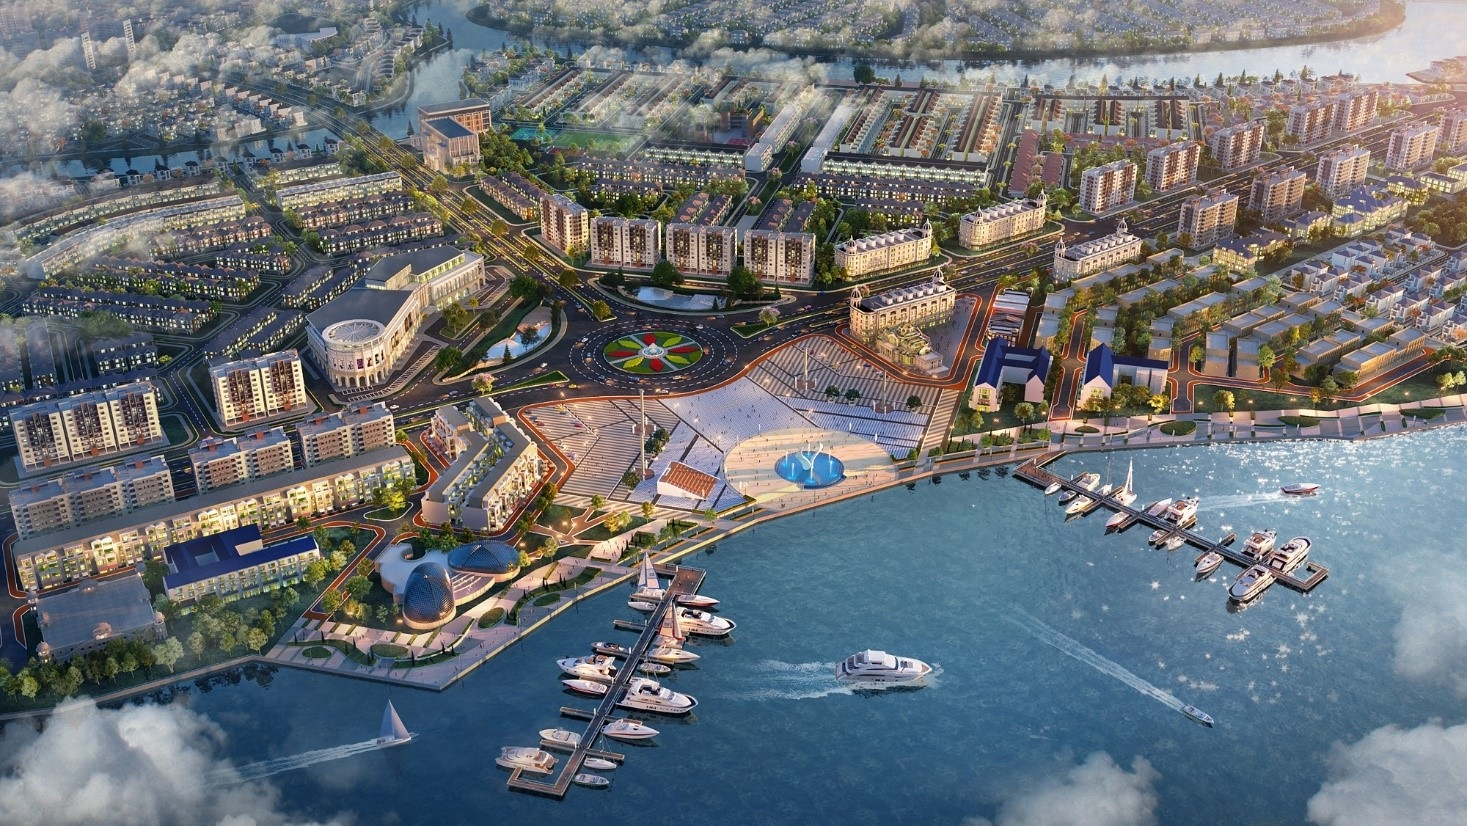 A townhouse next to the marina: The attraction of rare property assets